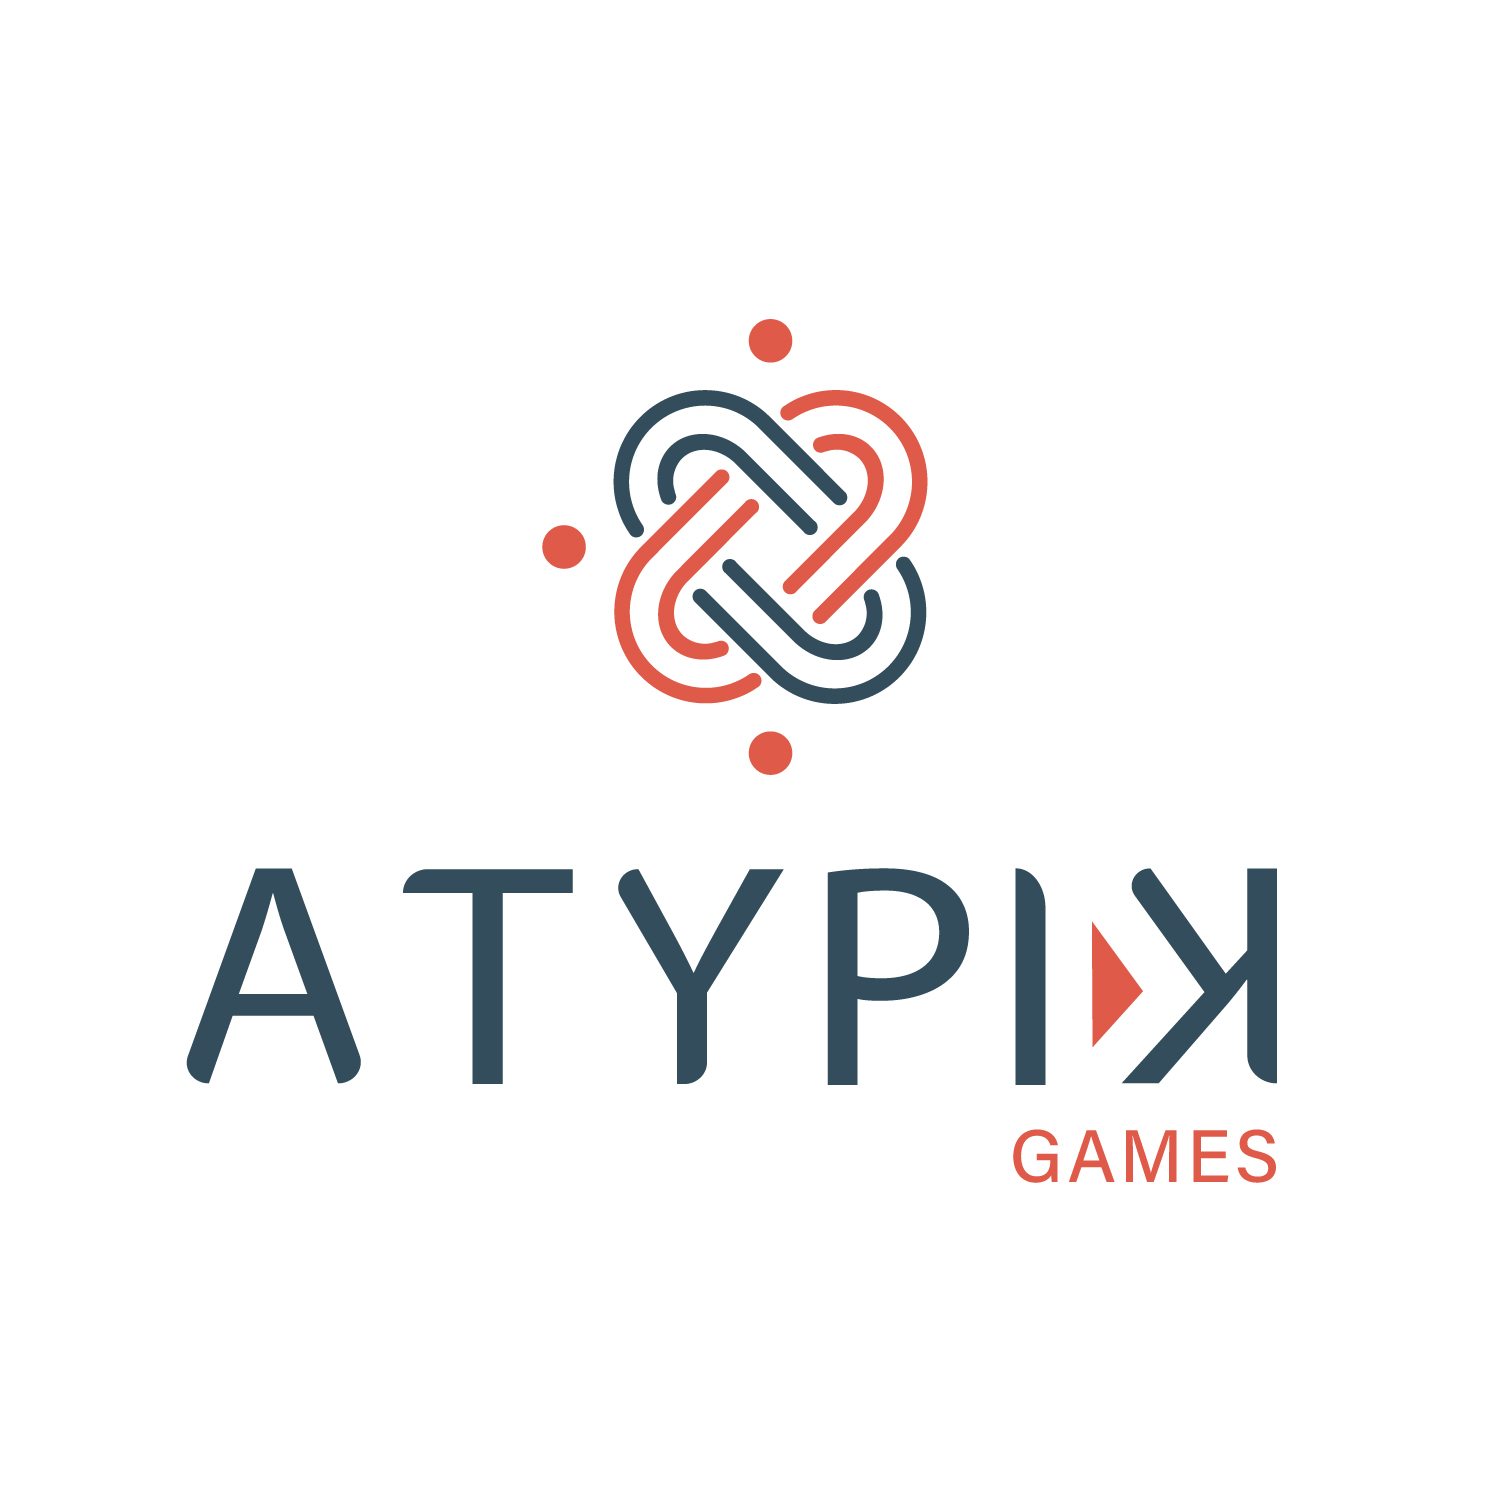 atypikgames escape room